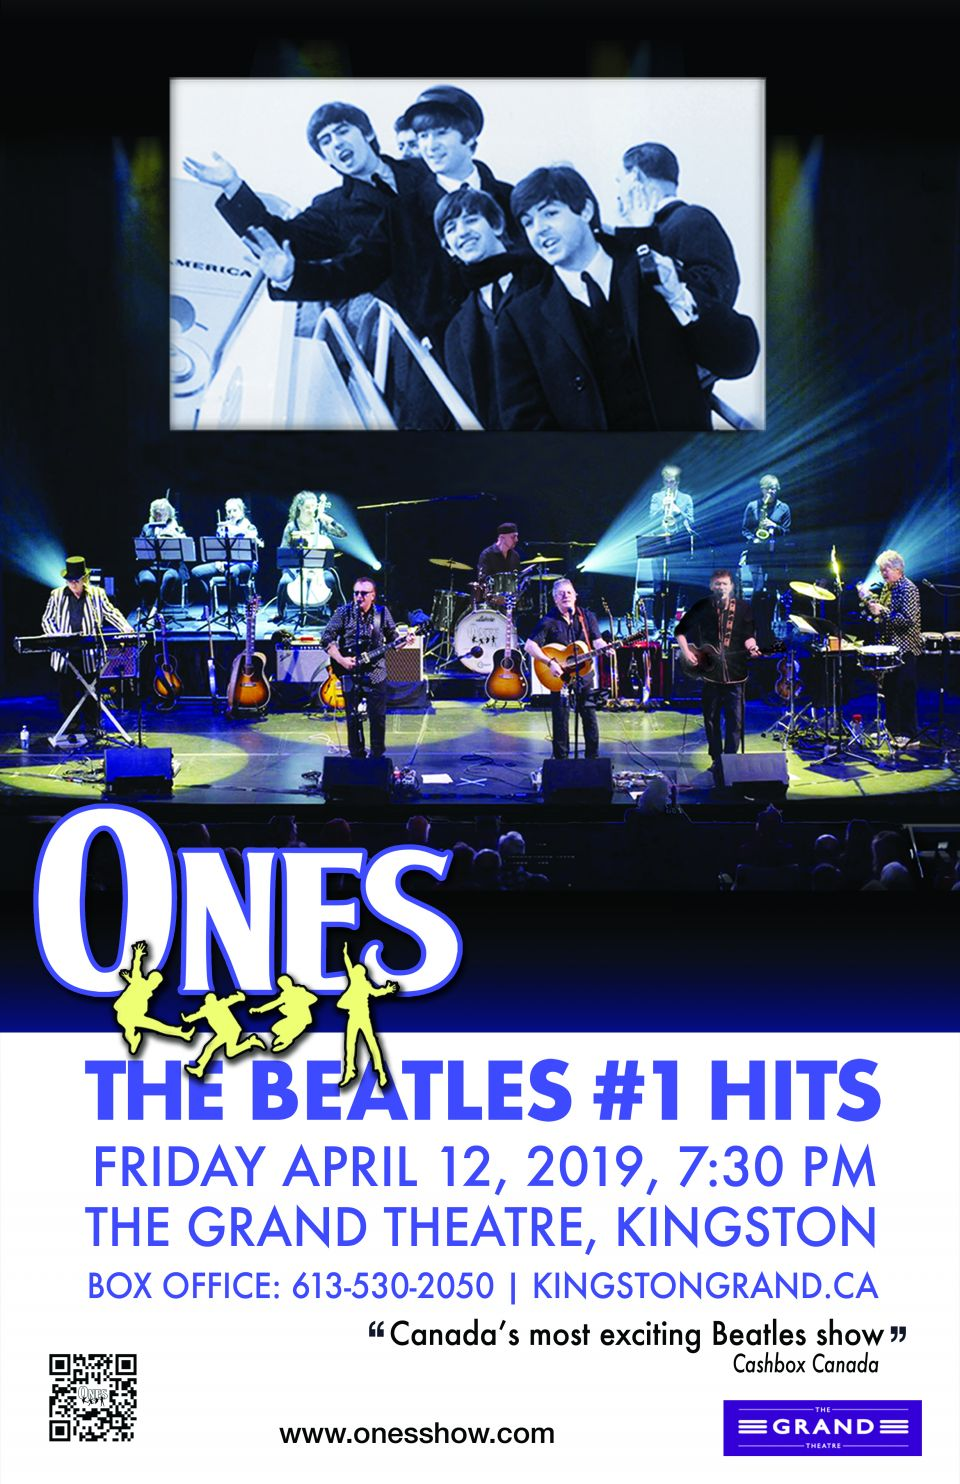 Ones - The Beatles #1 Hits